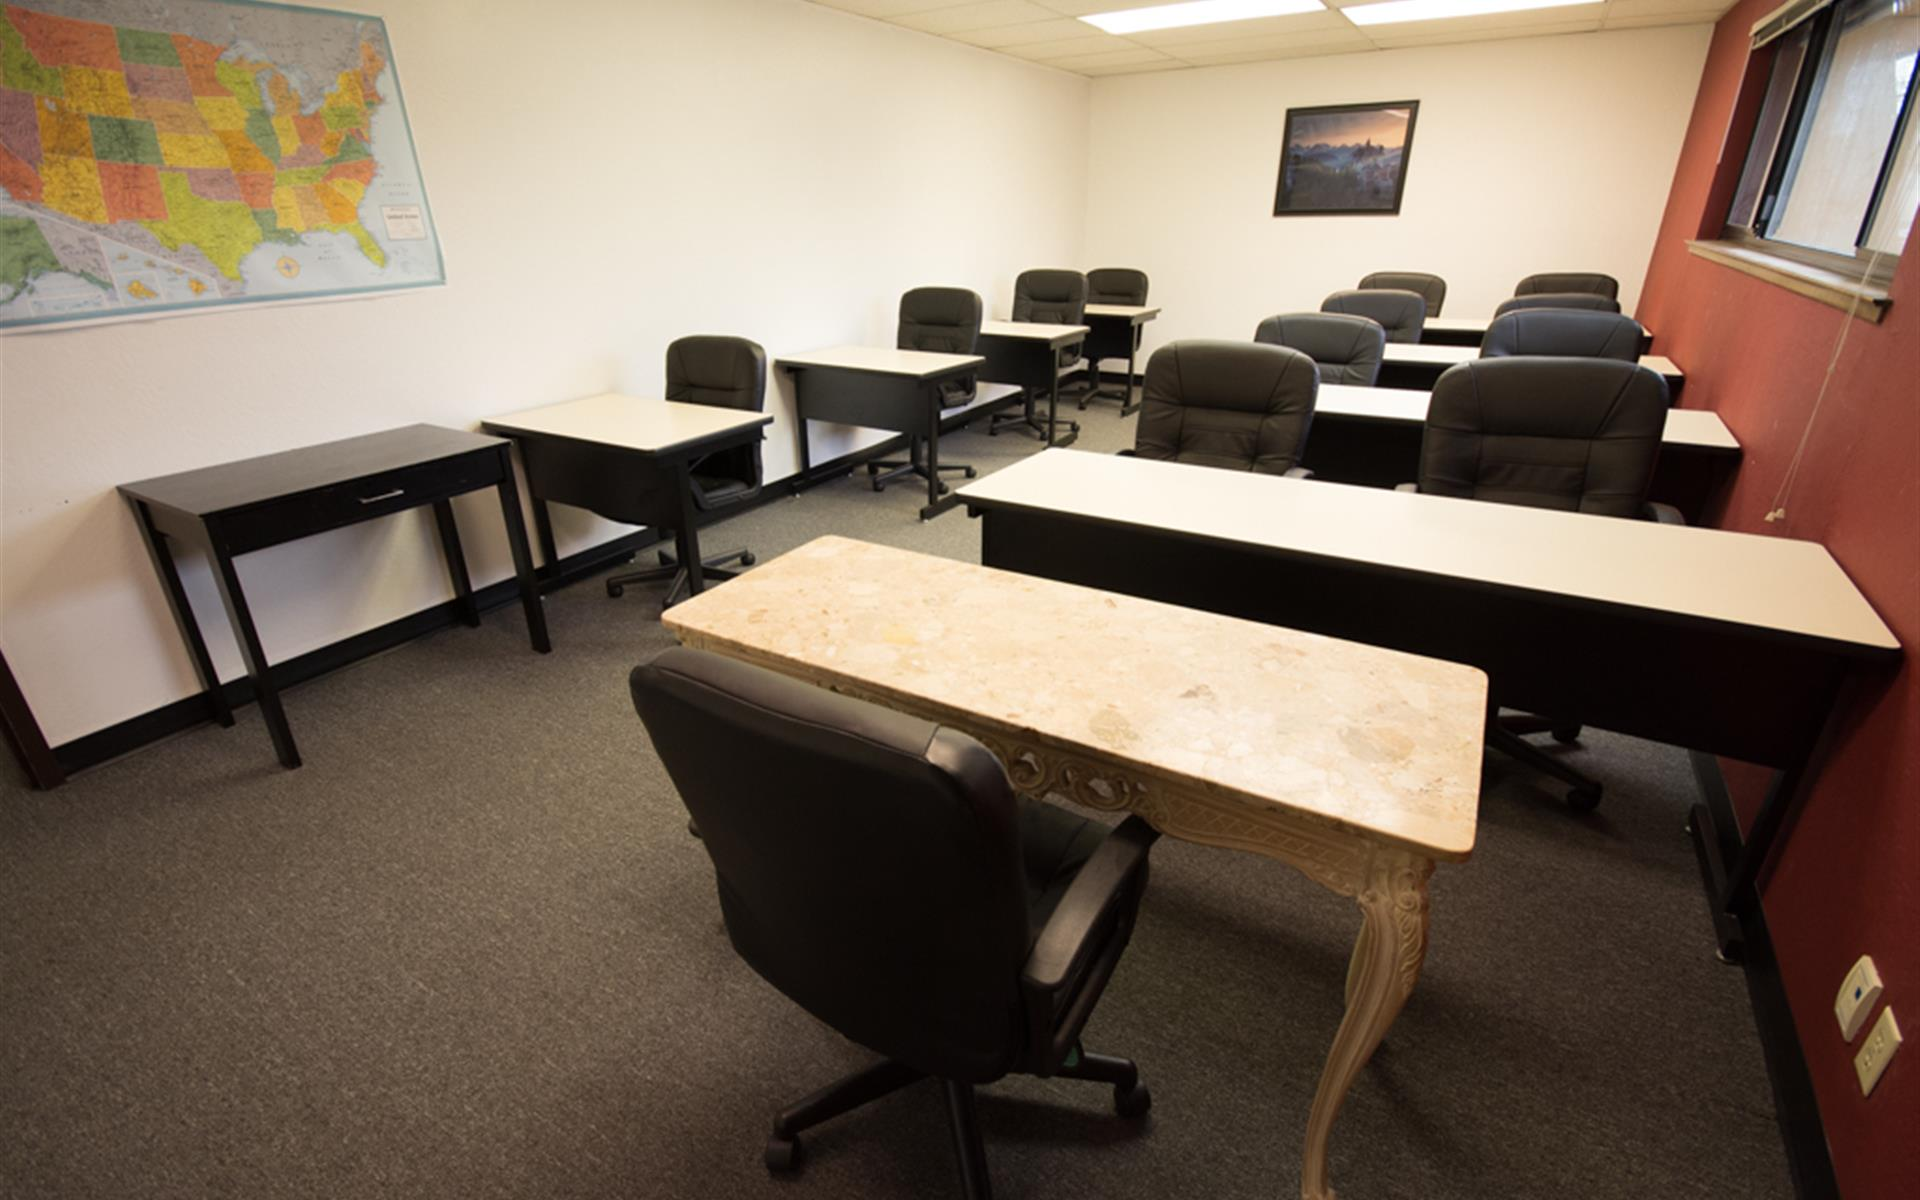 San Jose Learning Center - Large Studio Space